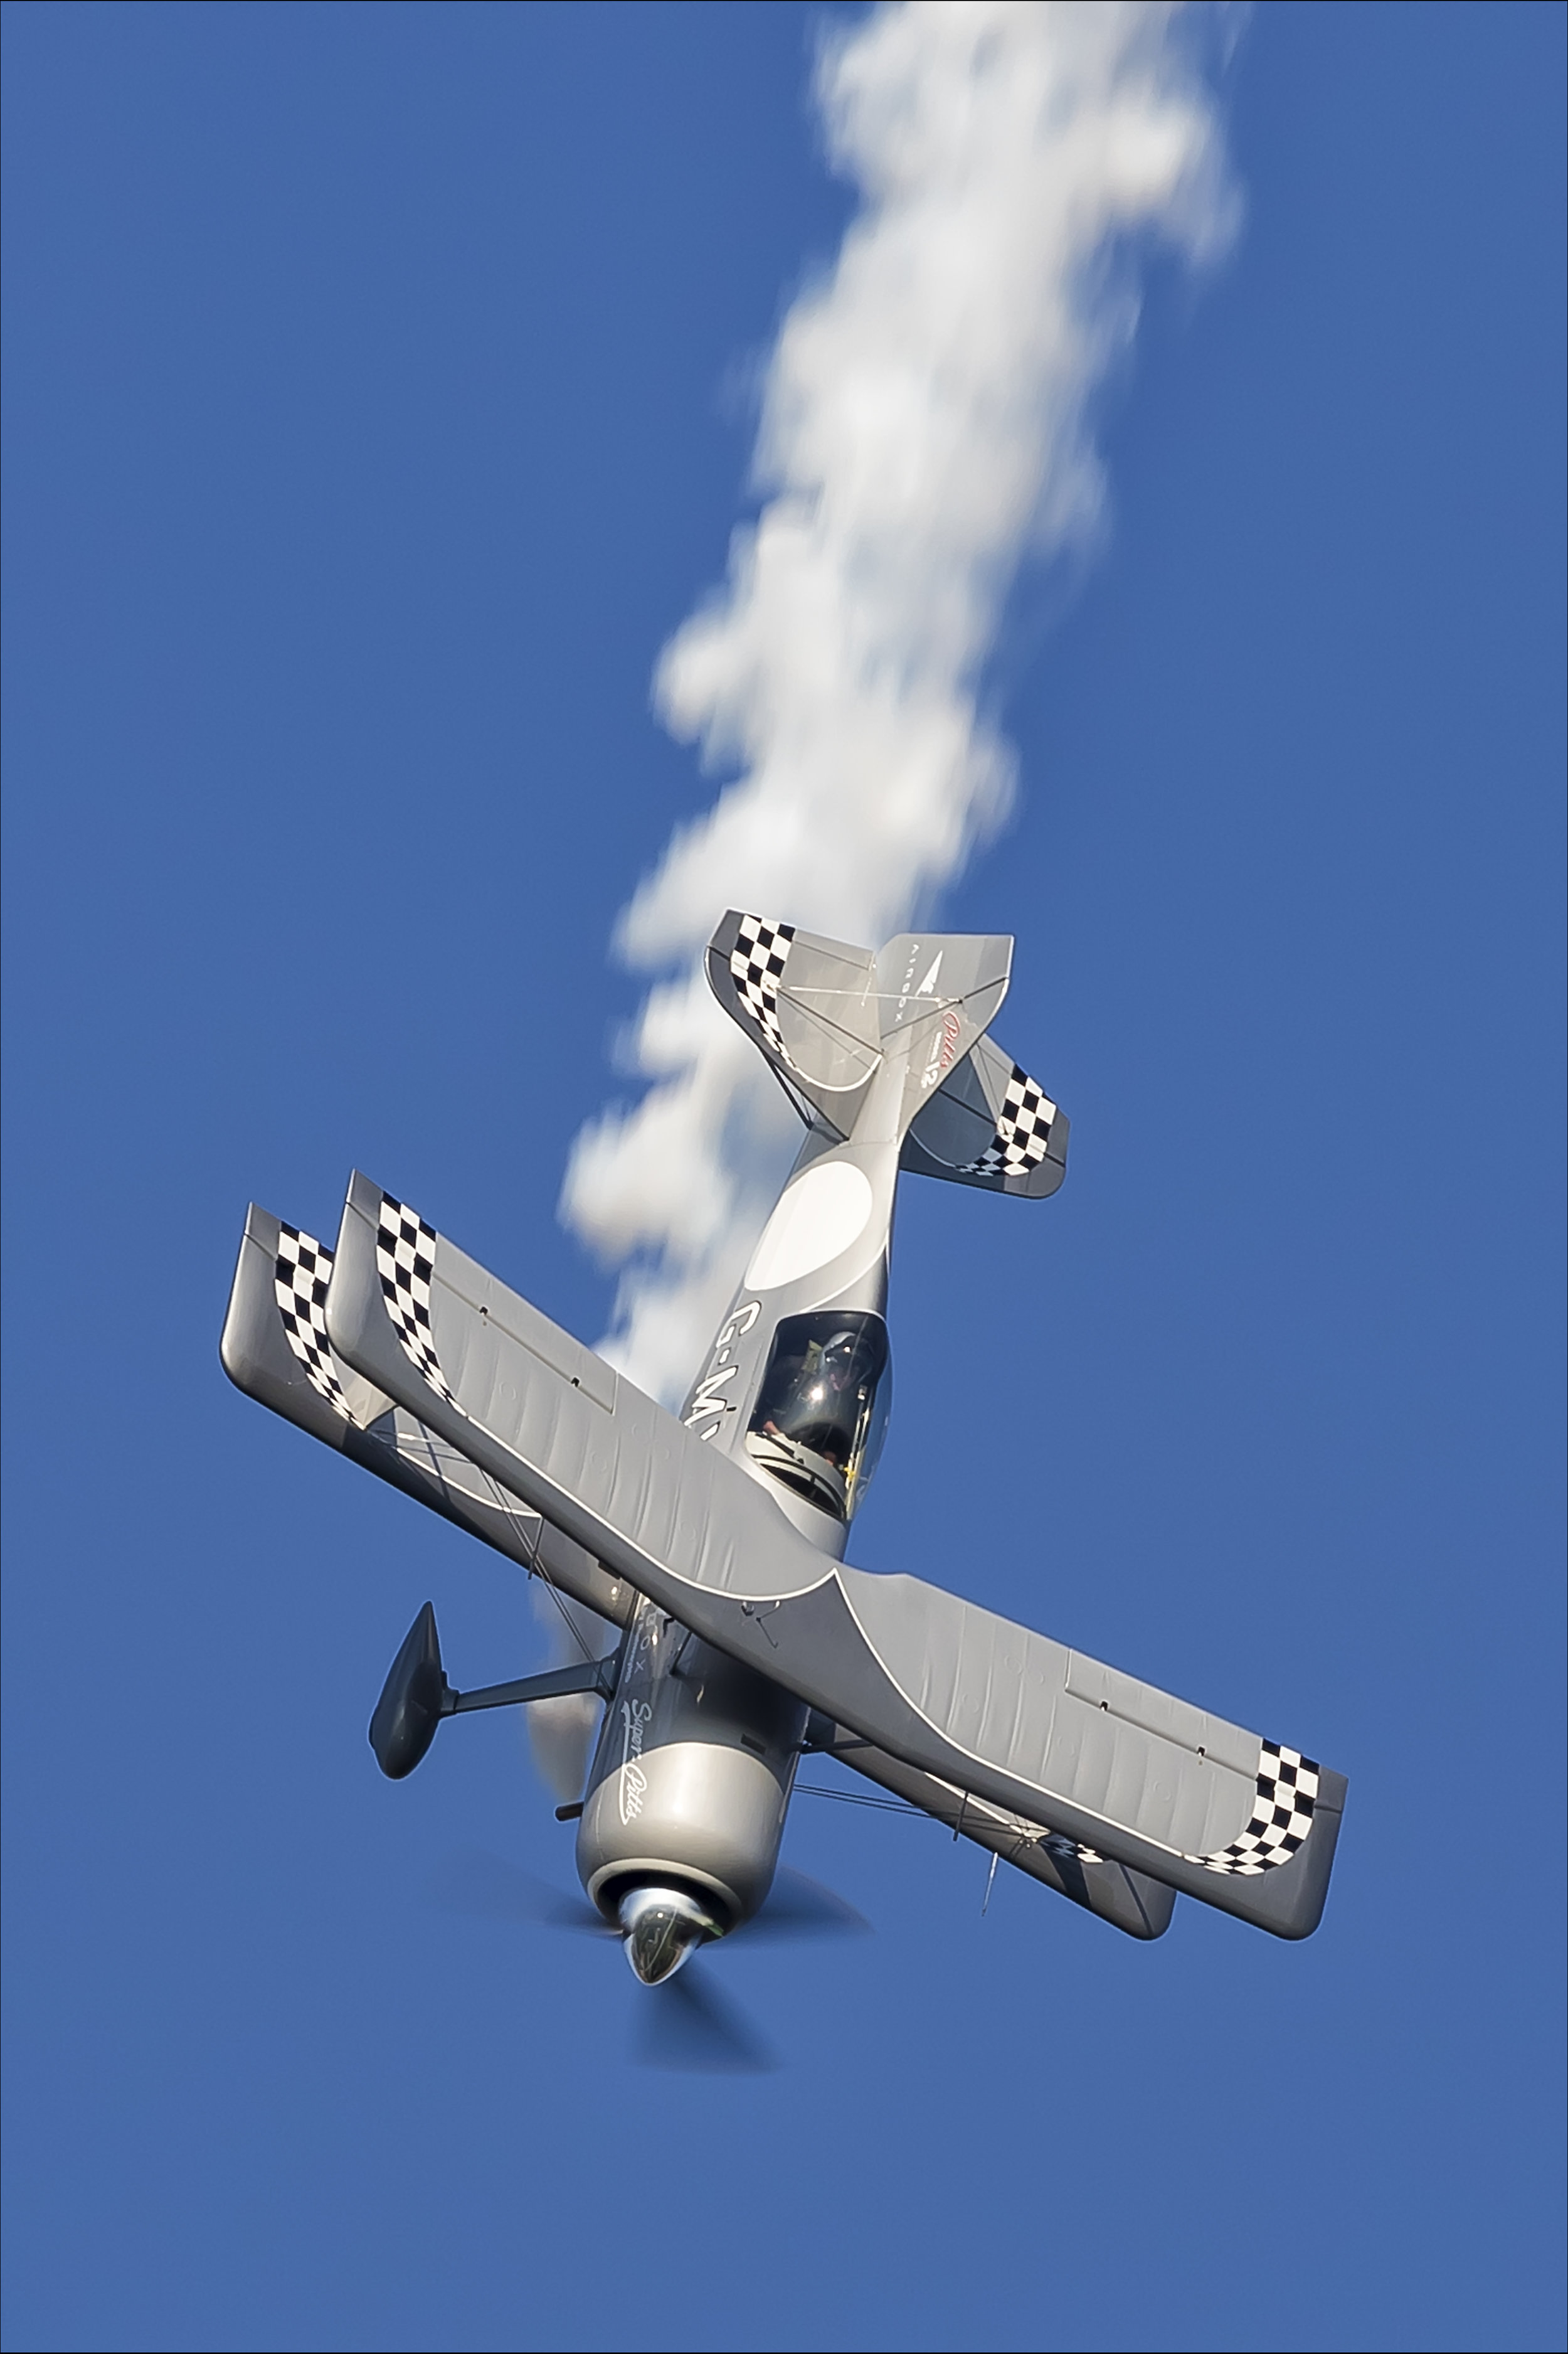 areobatic air display - air show - pitts special air display - air show uk - arobatic pilot.jpg